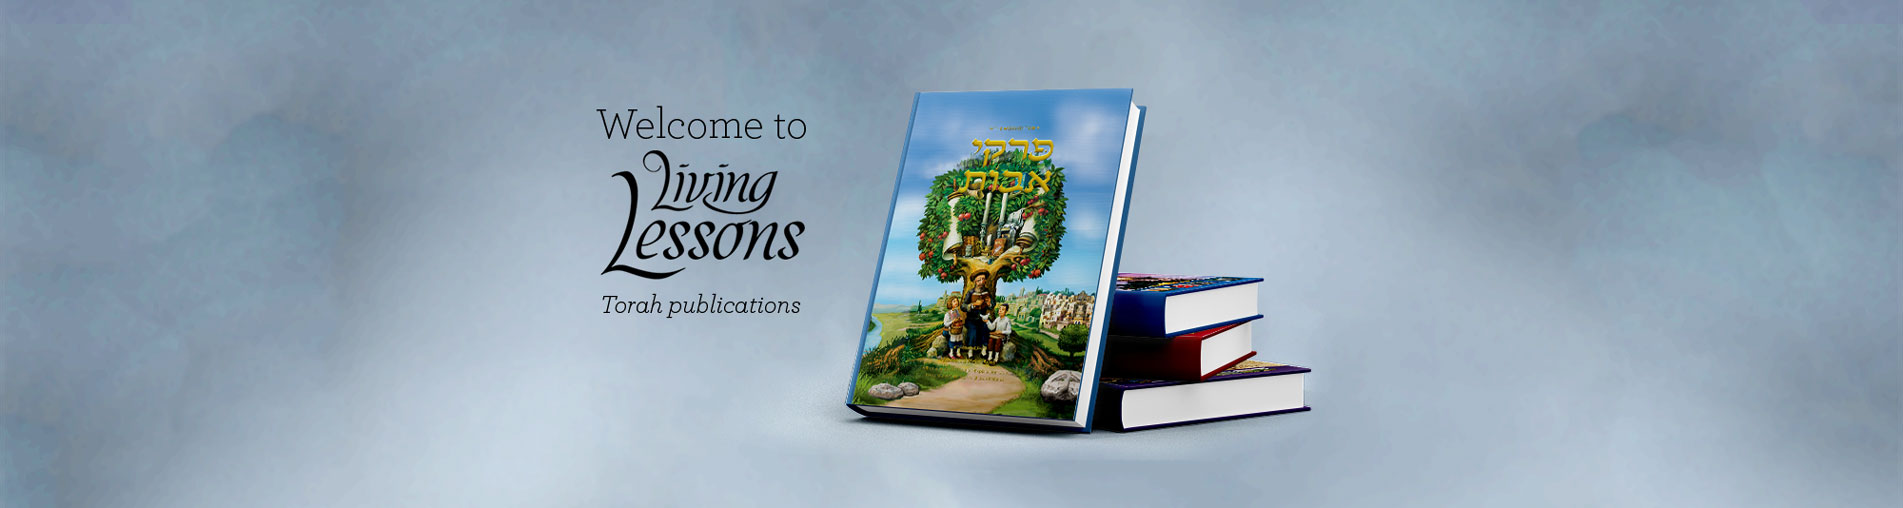 Welcome to Living Lessons Torah publications